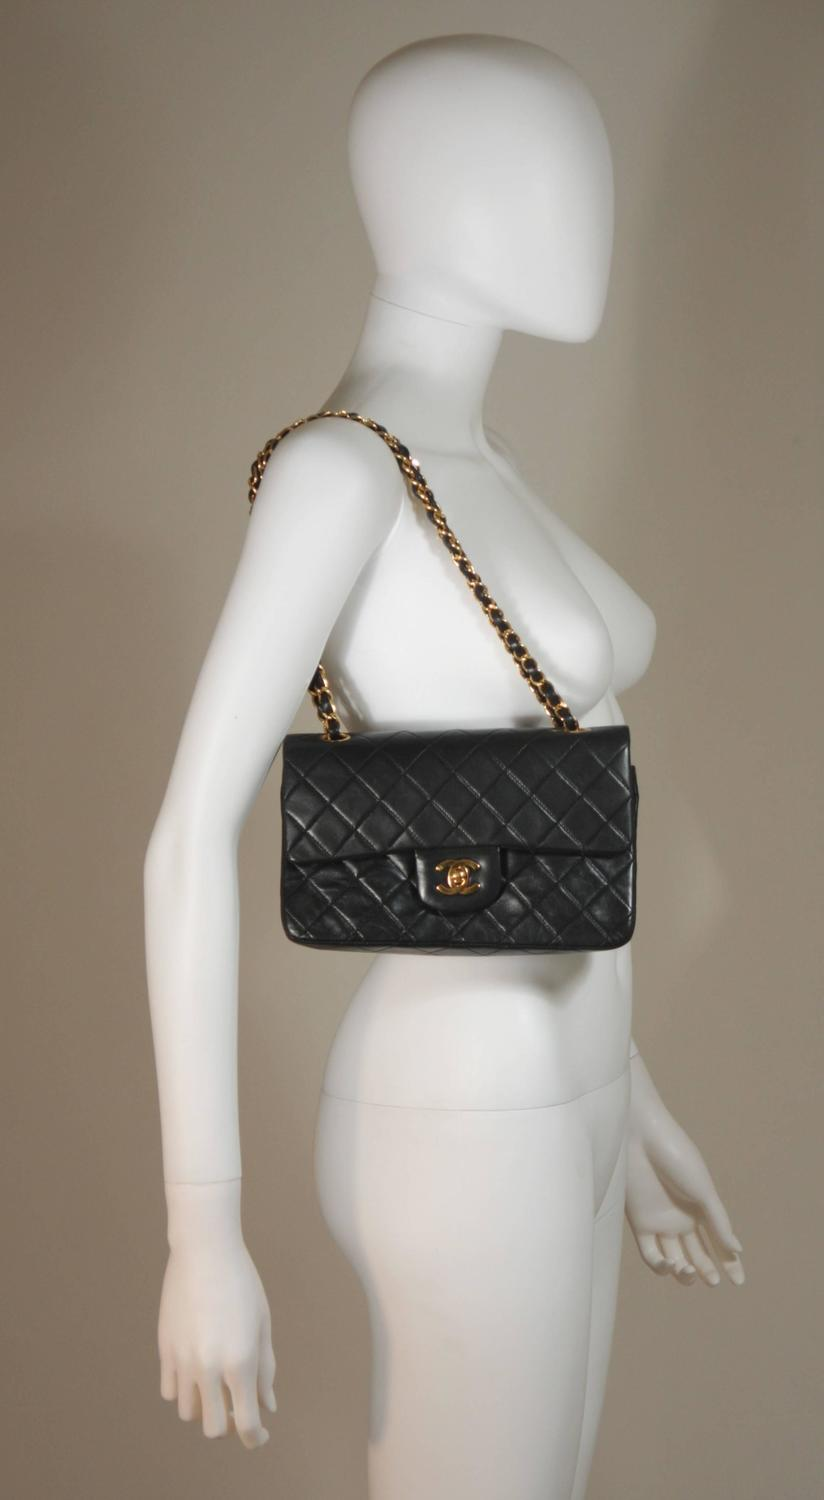 Chanel Black Quilted Caviar Maxi Classic Flap Bag SHW at 1stdibs